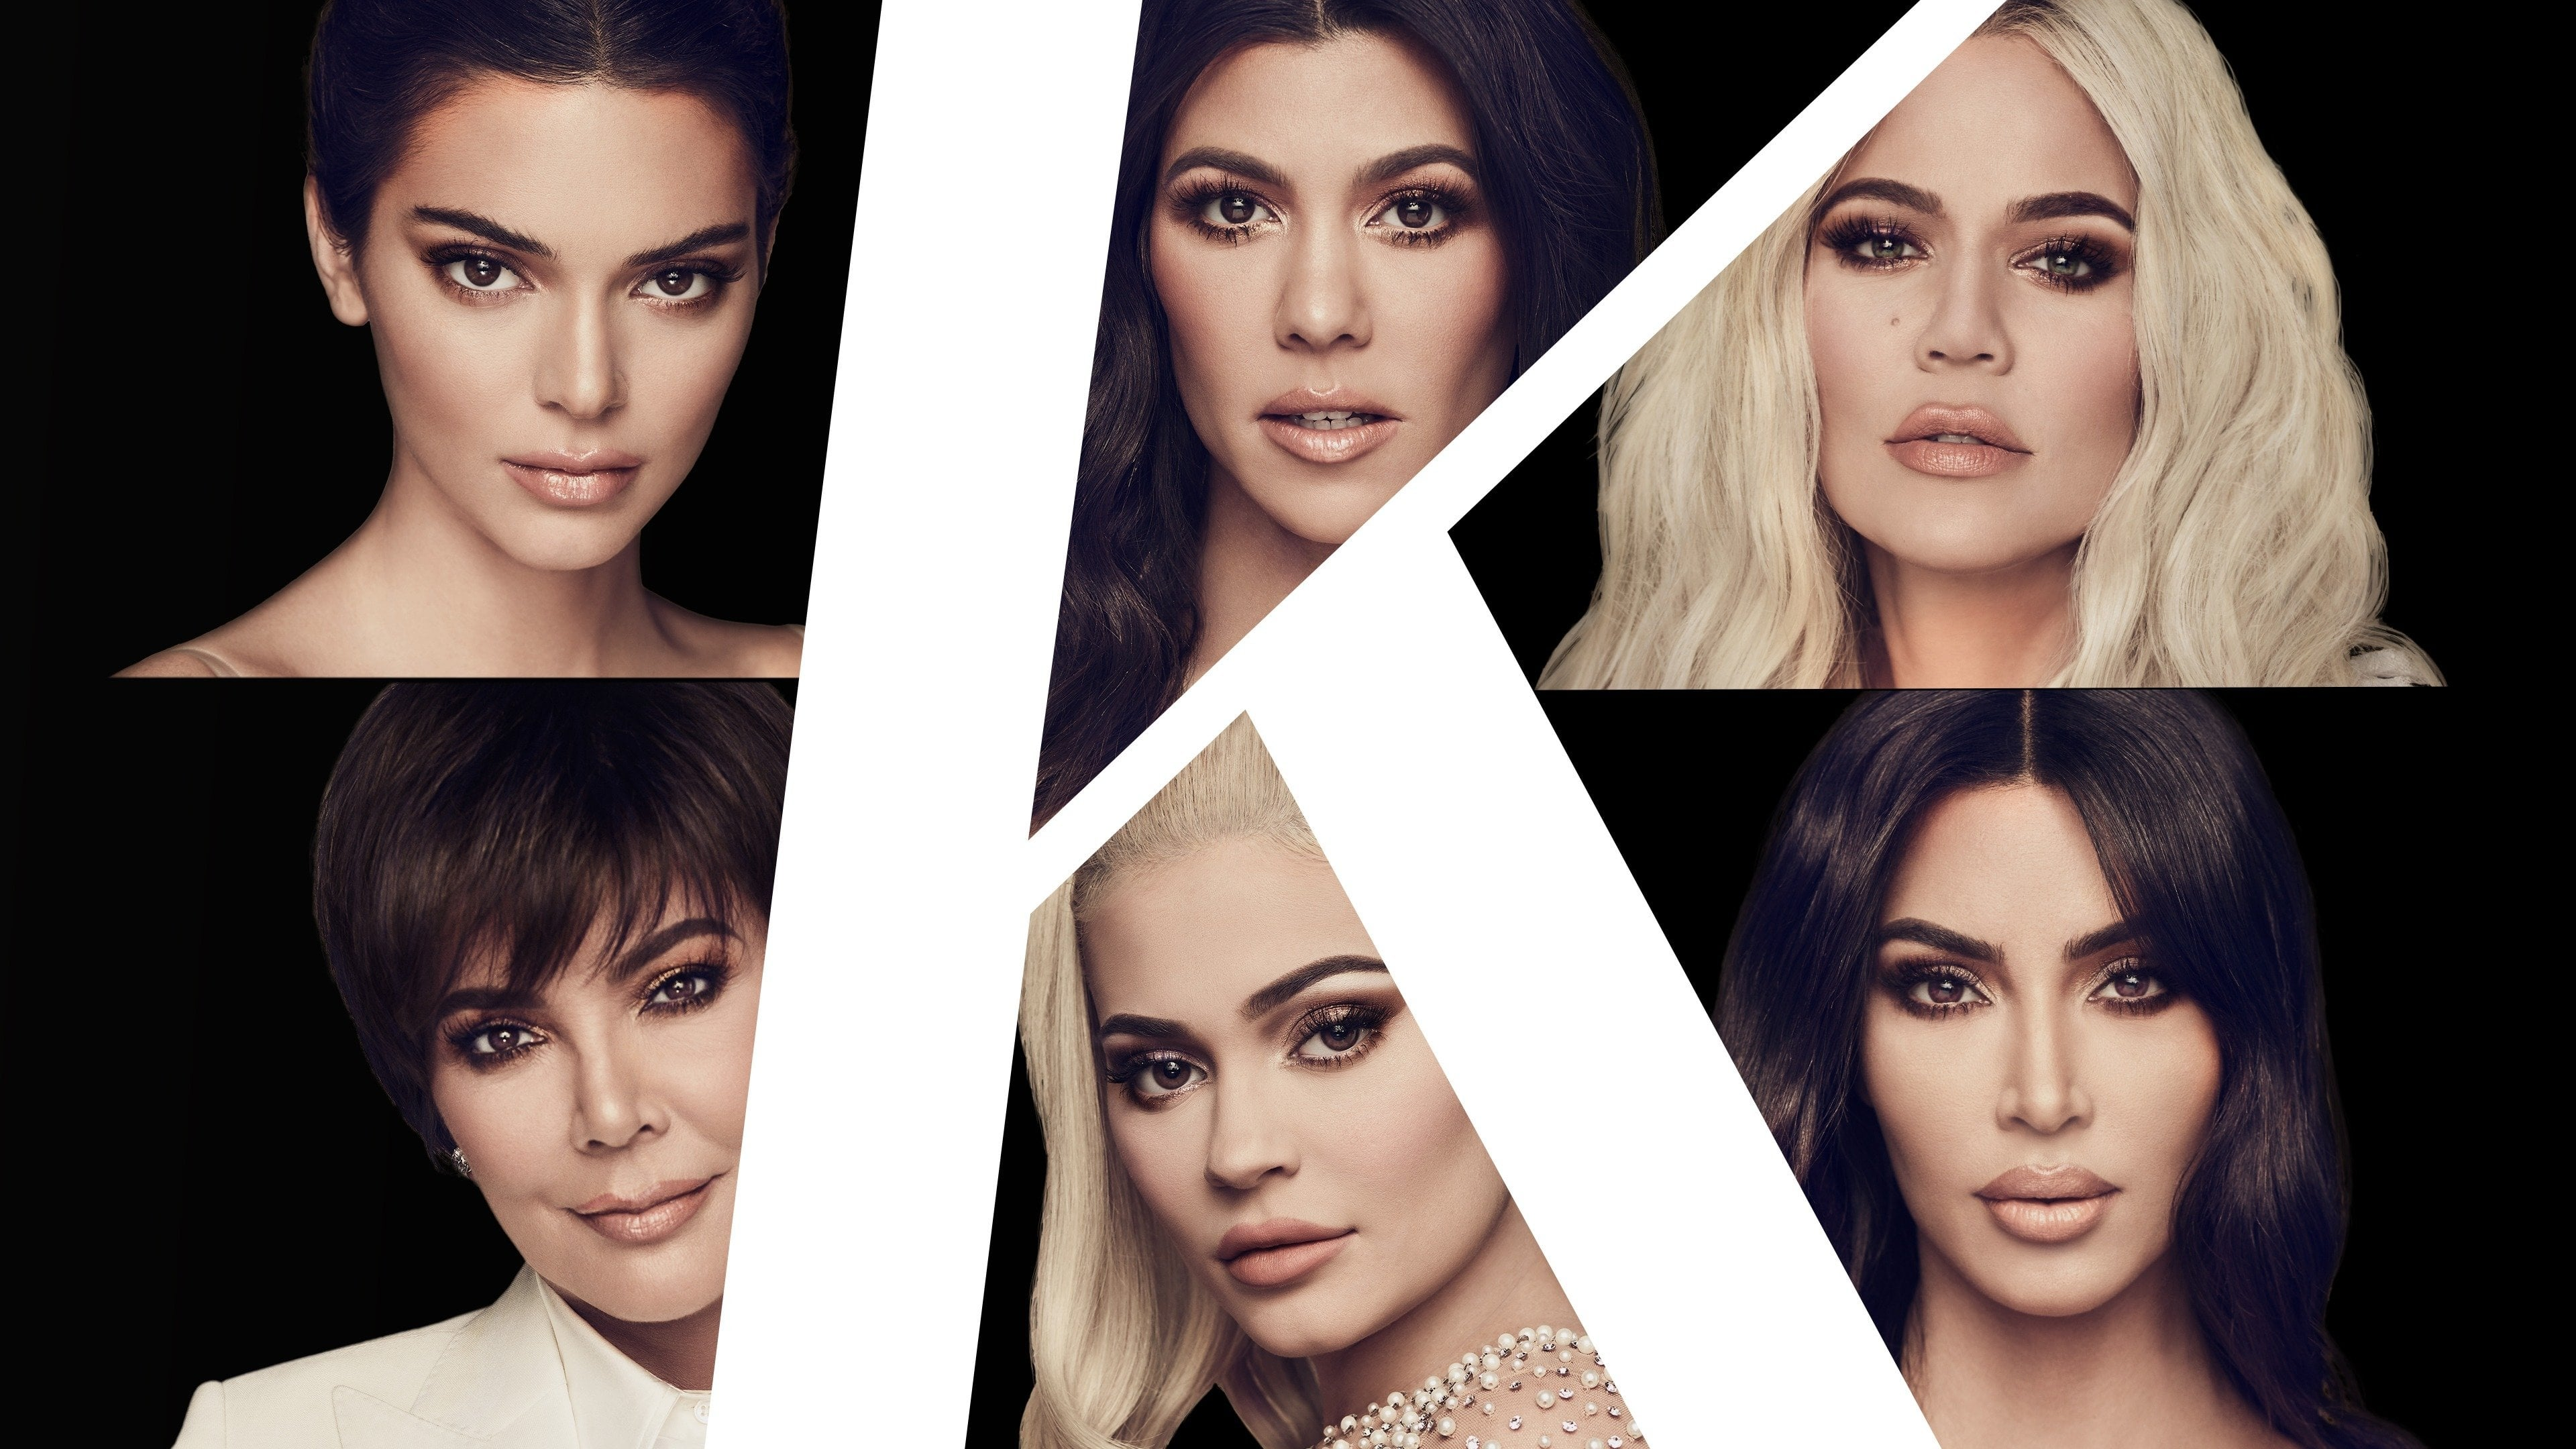 Keeping Up with the Kardashians - Season 14